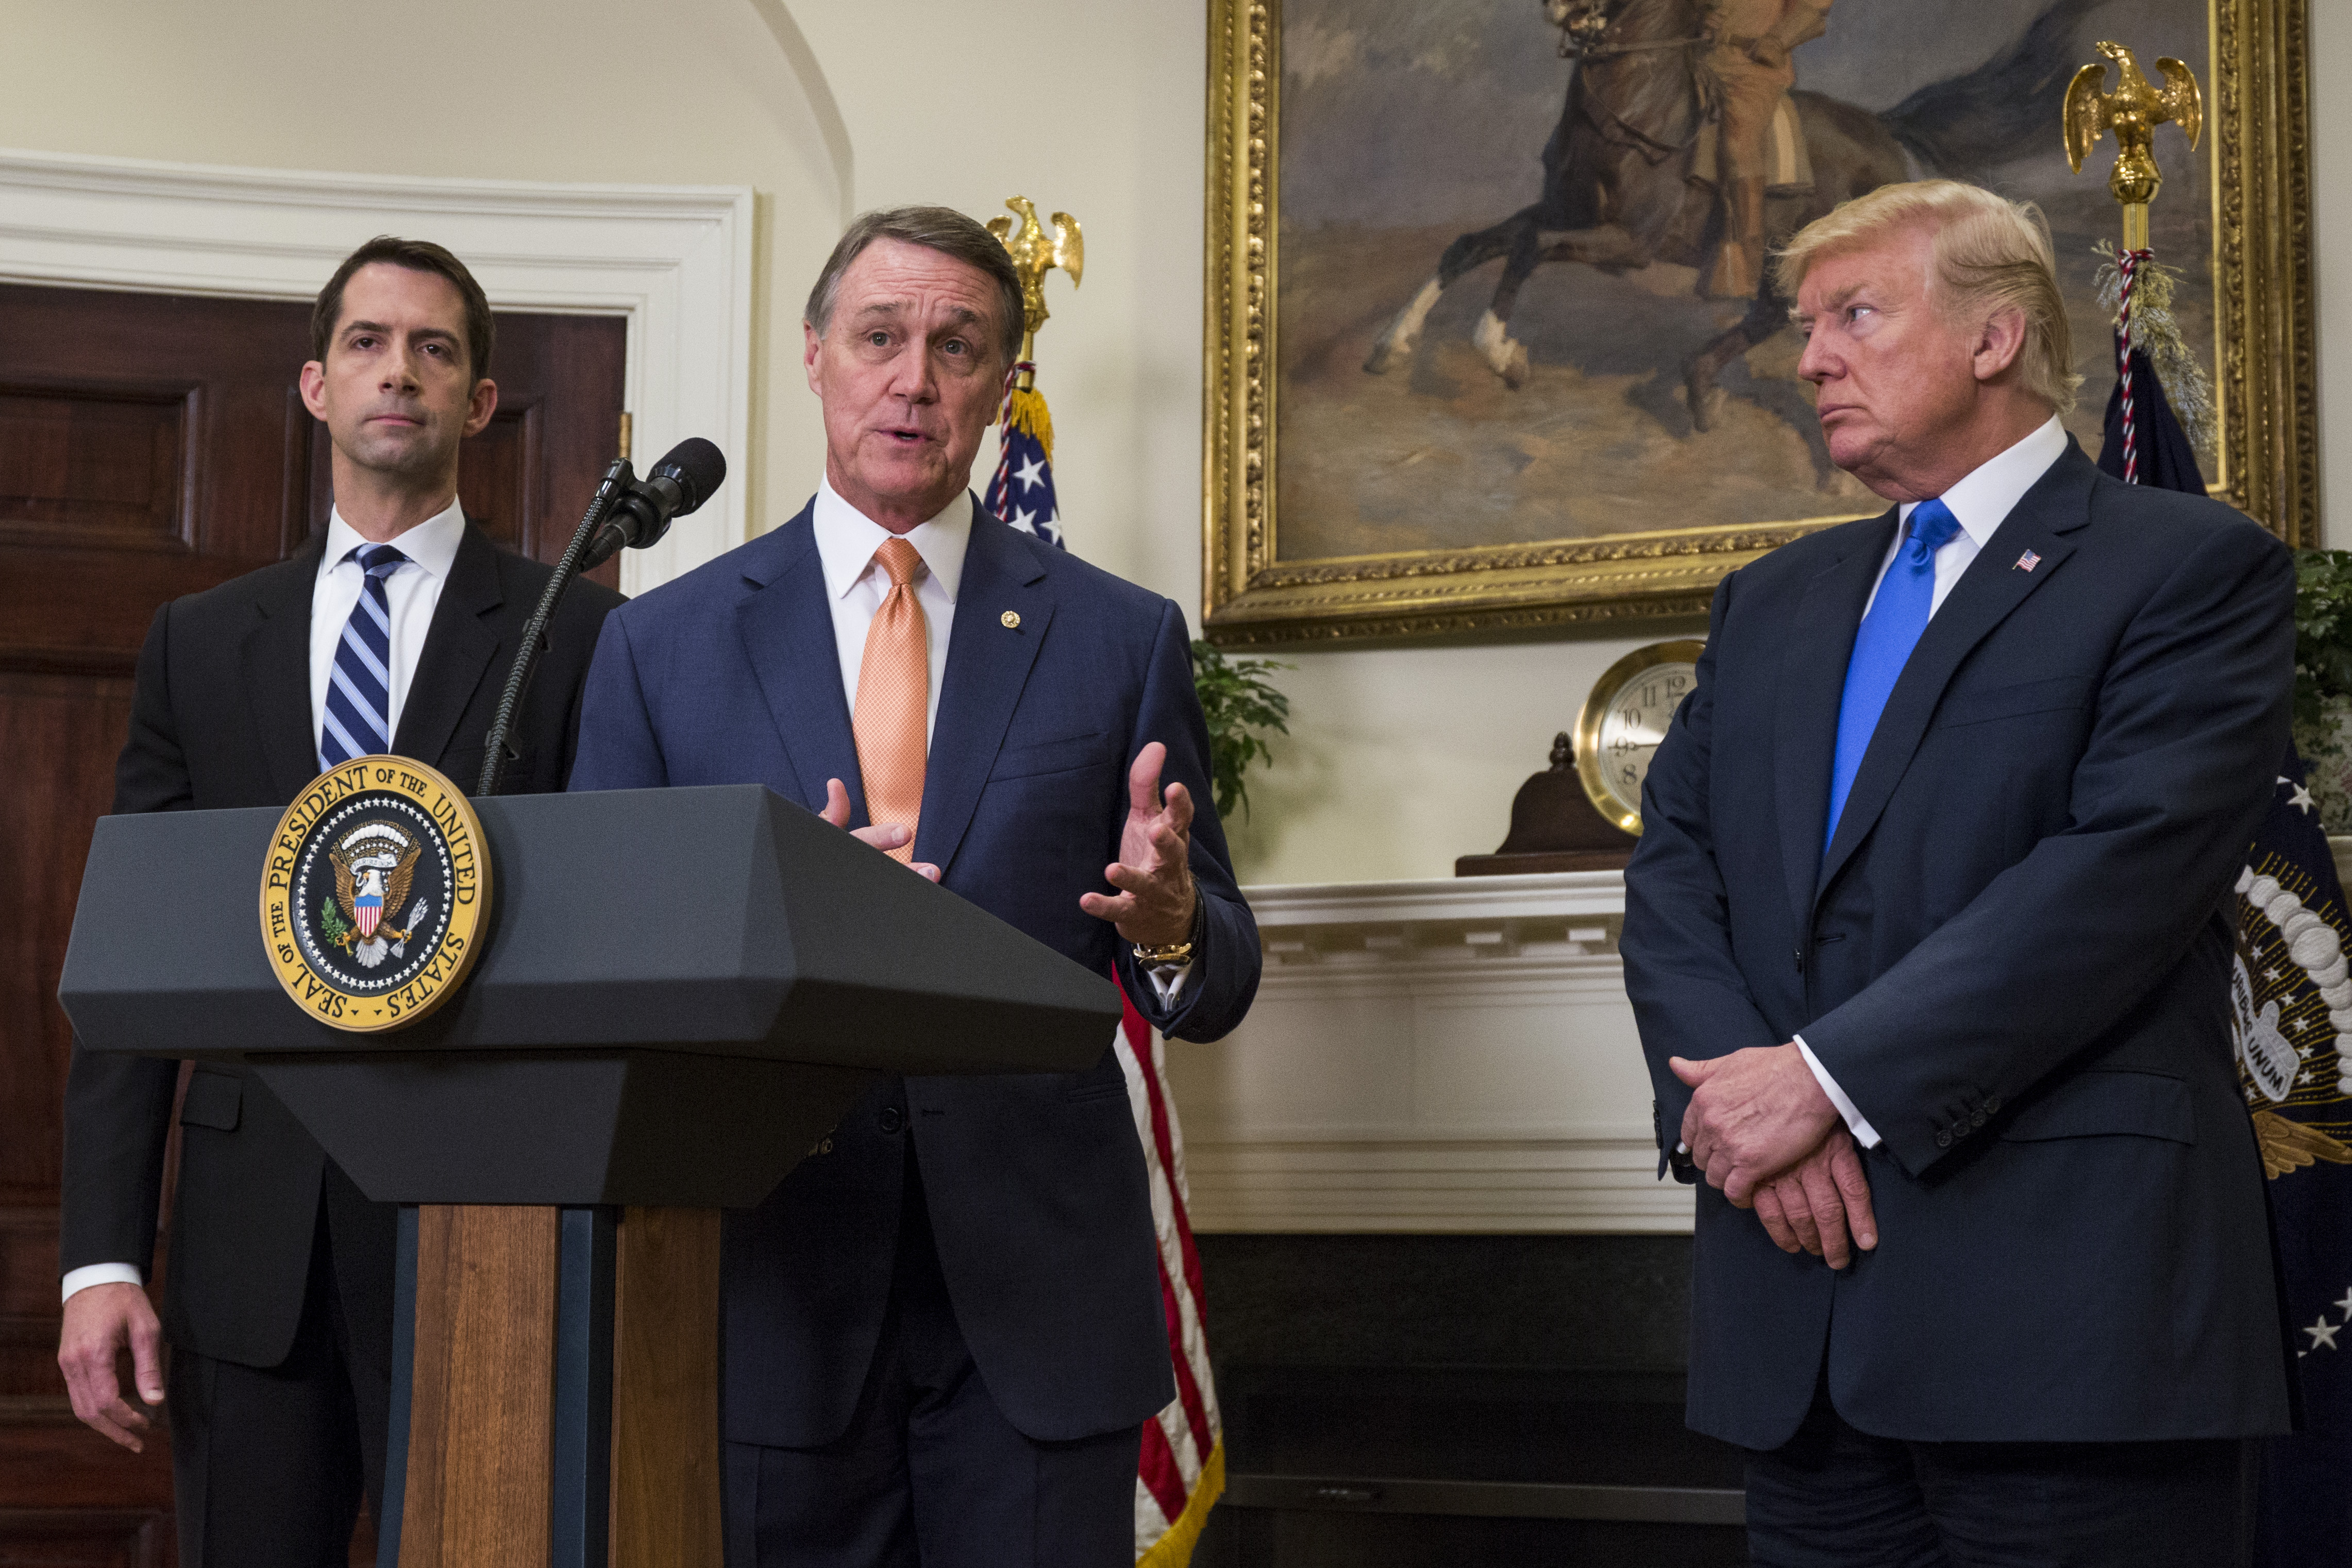 "WASHINGTON, DC - AUGUST 2: (AFP OUT) Sen. David Perdue (R-GA) makes an announcement on the introduction of the Reforming American Immigration for a Strong Economy (RAISE) Act in the Roosevelt Room at the White House on August 2, 2017 in Washington, DC. The act aims to overhaul U.S. immigration by moving towards a ""merit-based"" system. Also pictured are Sen. Tom Cotton (R-AR) left, and U.S. President Donald Trump, right.(Photo by Zach Gibson - Pool/Getty Images)"